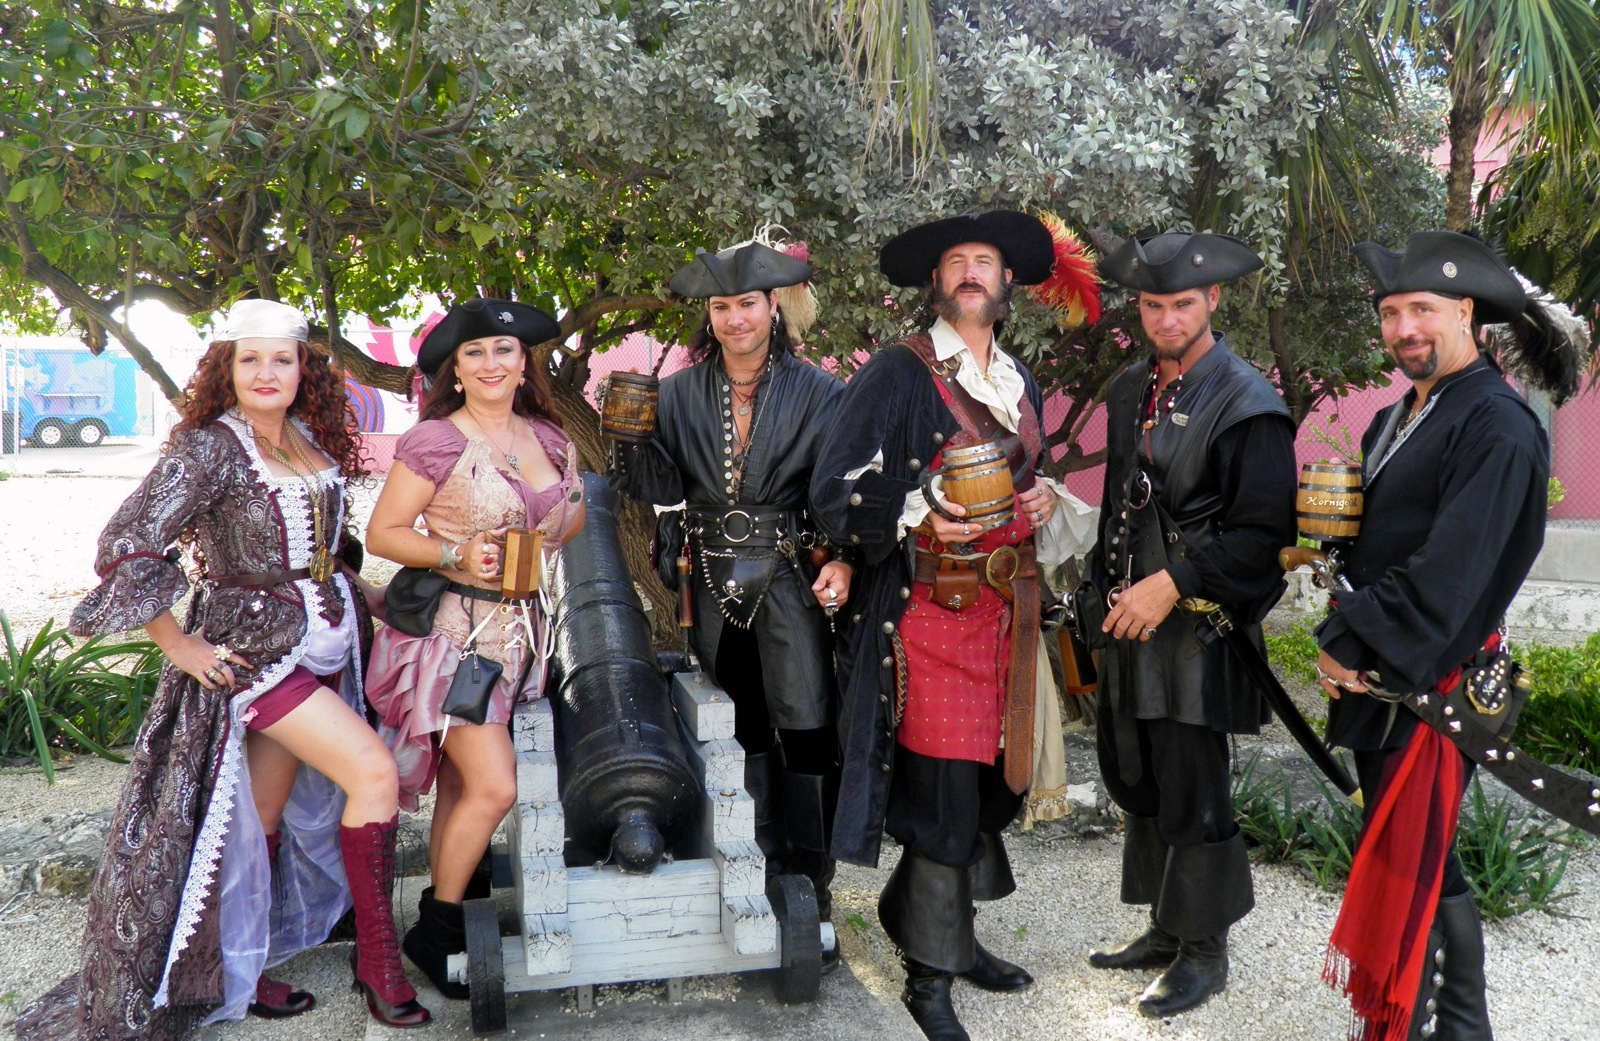 Pirates Week Festival George Town, Cayman Islands 10-20 November